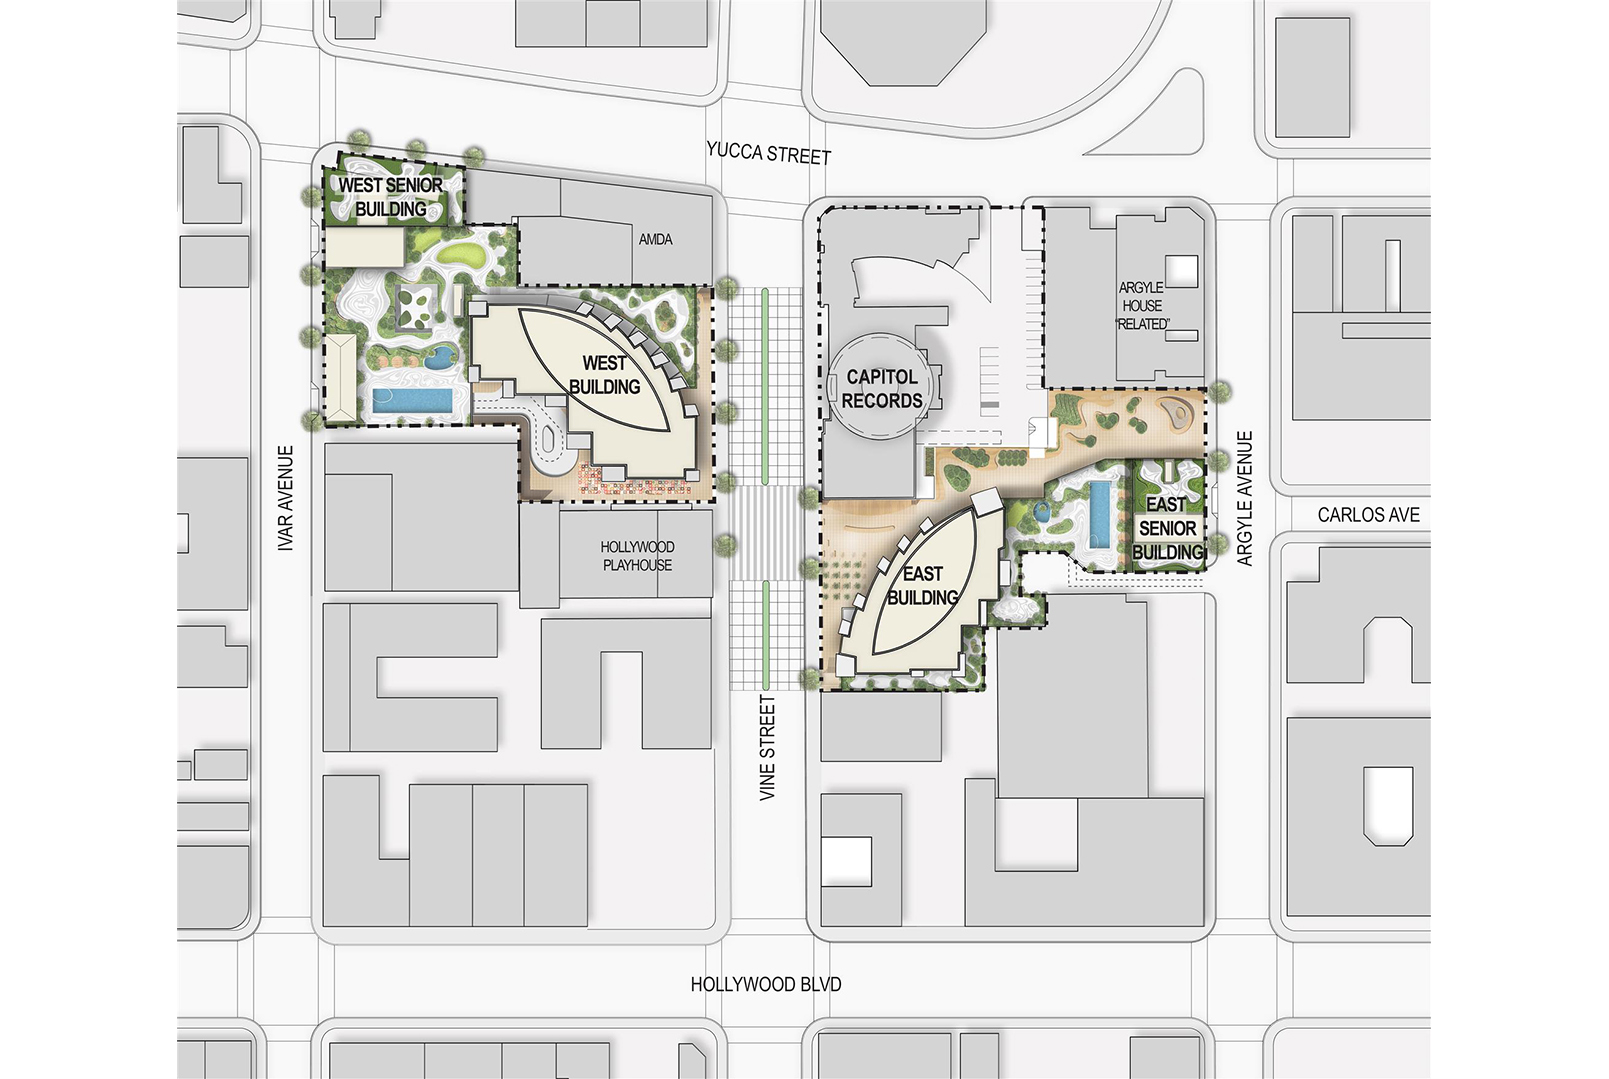 http://hollywoodctr.com/wp-content/uploads/2018/04/site_plan_final.jpg